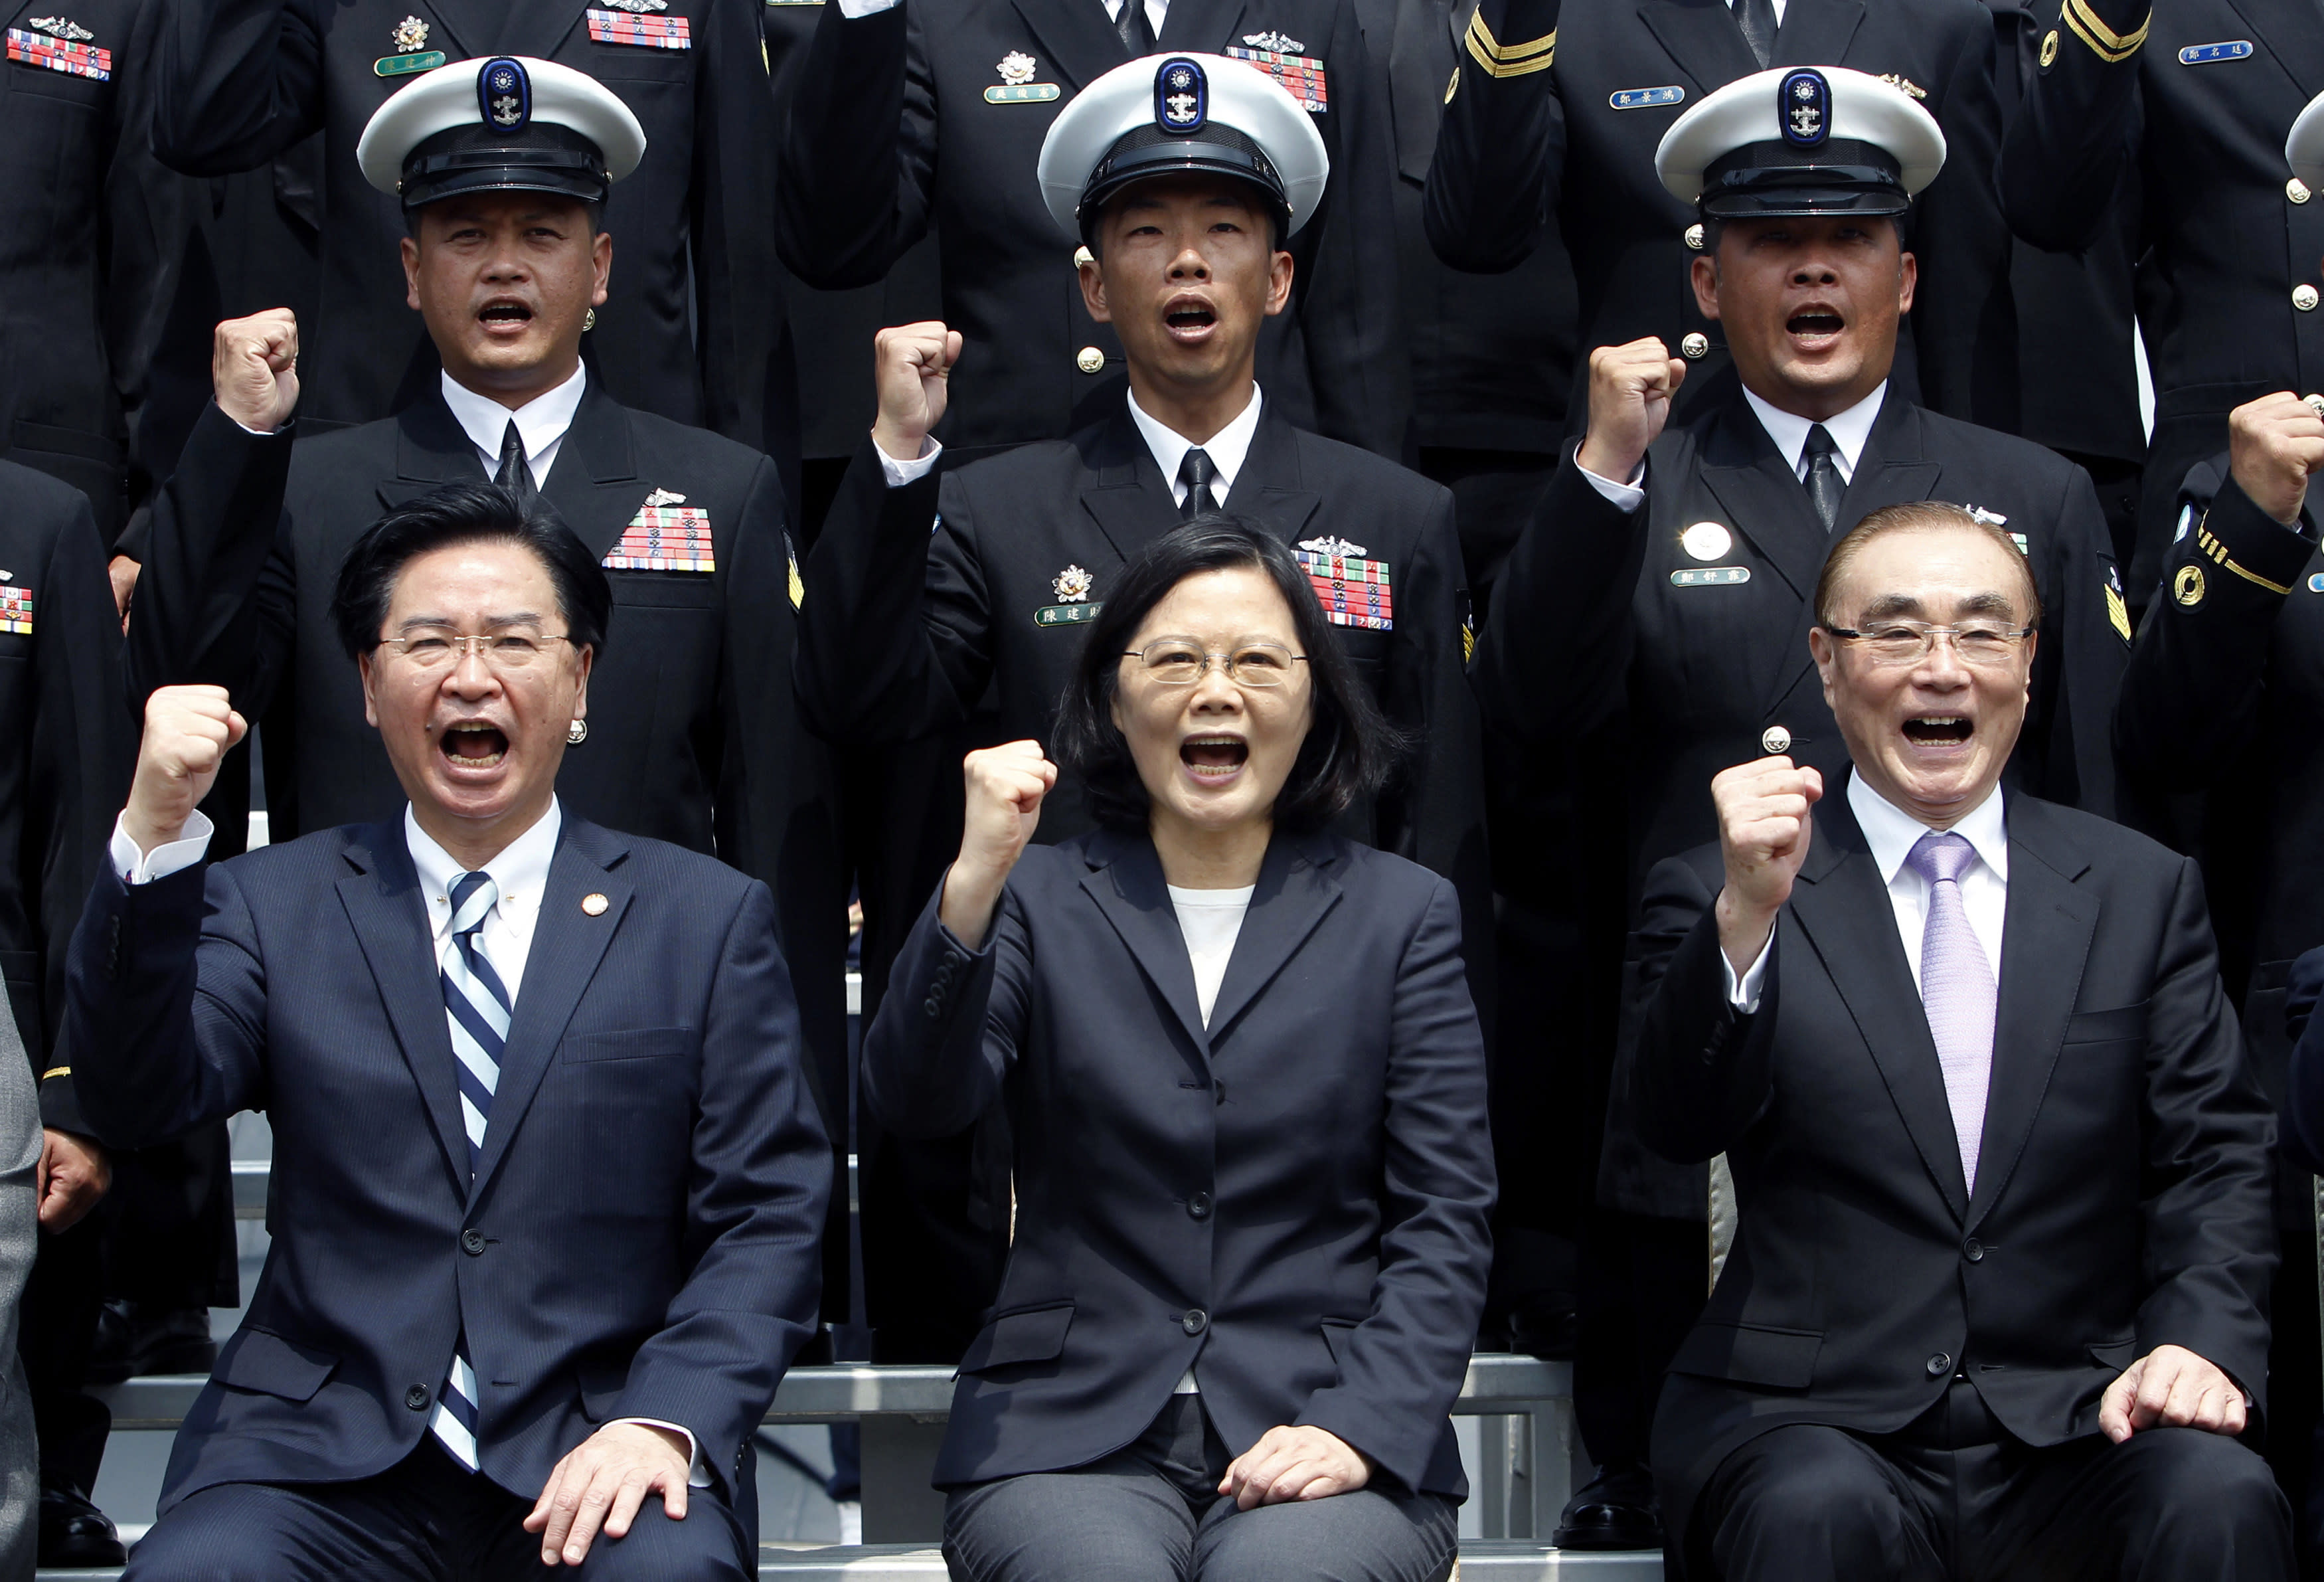 """FILE - In this March 21, 2017, file photo, Taiwan's President Tsai Ing-wen, center, along with Defense Minister Feng Shih-kuan, right, and Secretary-General of National Security Council Joseph Wu, left, cheer with navy officers during a visit to Zuoying Naval base in Kaohsiung, southern Taiwan. China says attempts by Taiwan's government to block its goal of bringing the self-governing island under Beijing's control are like """"stretching out an arm to block a car."""" The new rhetorical broadside was launched late Tuesday, March 12, 2019 against Taiwanese President Tsai following her announcement of guidelines to counter China's """"one country, two systems"""" framework for political unification with the island. (AP Photo/Chiang Ying-ying, File)"""